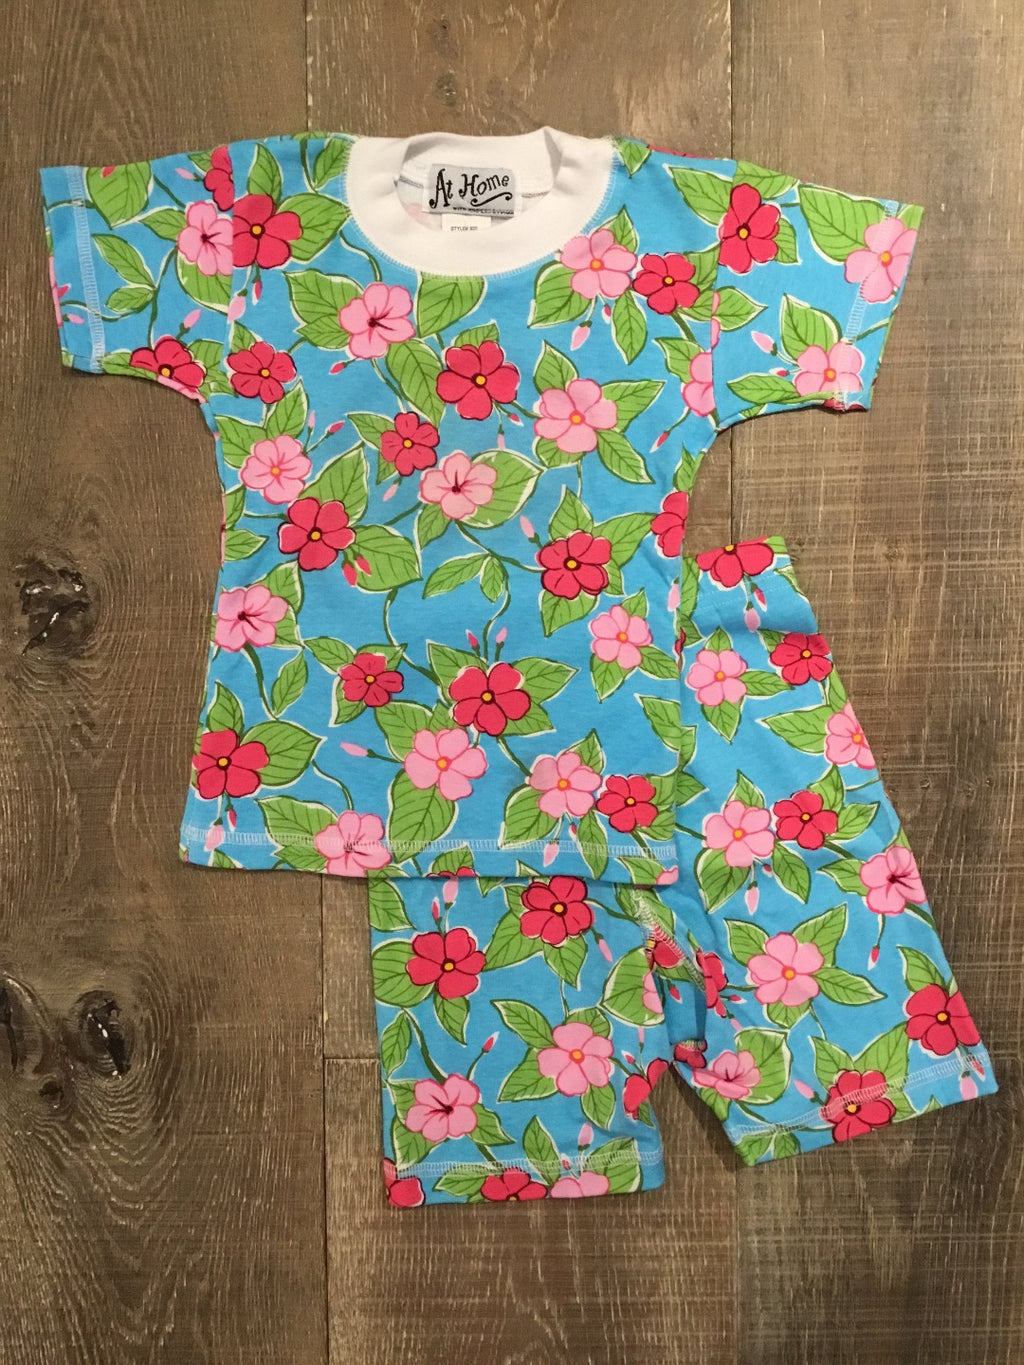 e731b59650 Sleepwear – Page 2 – Bright Beginnings Boutique